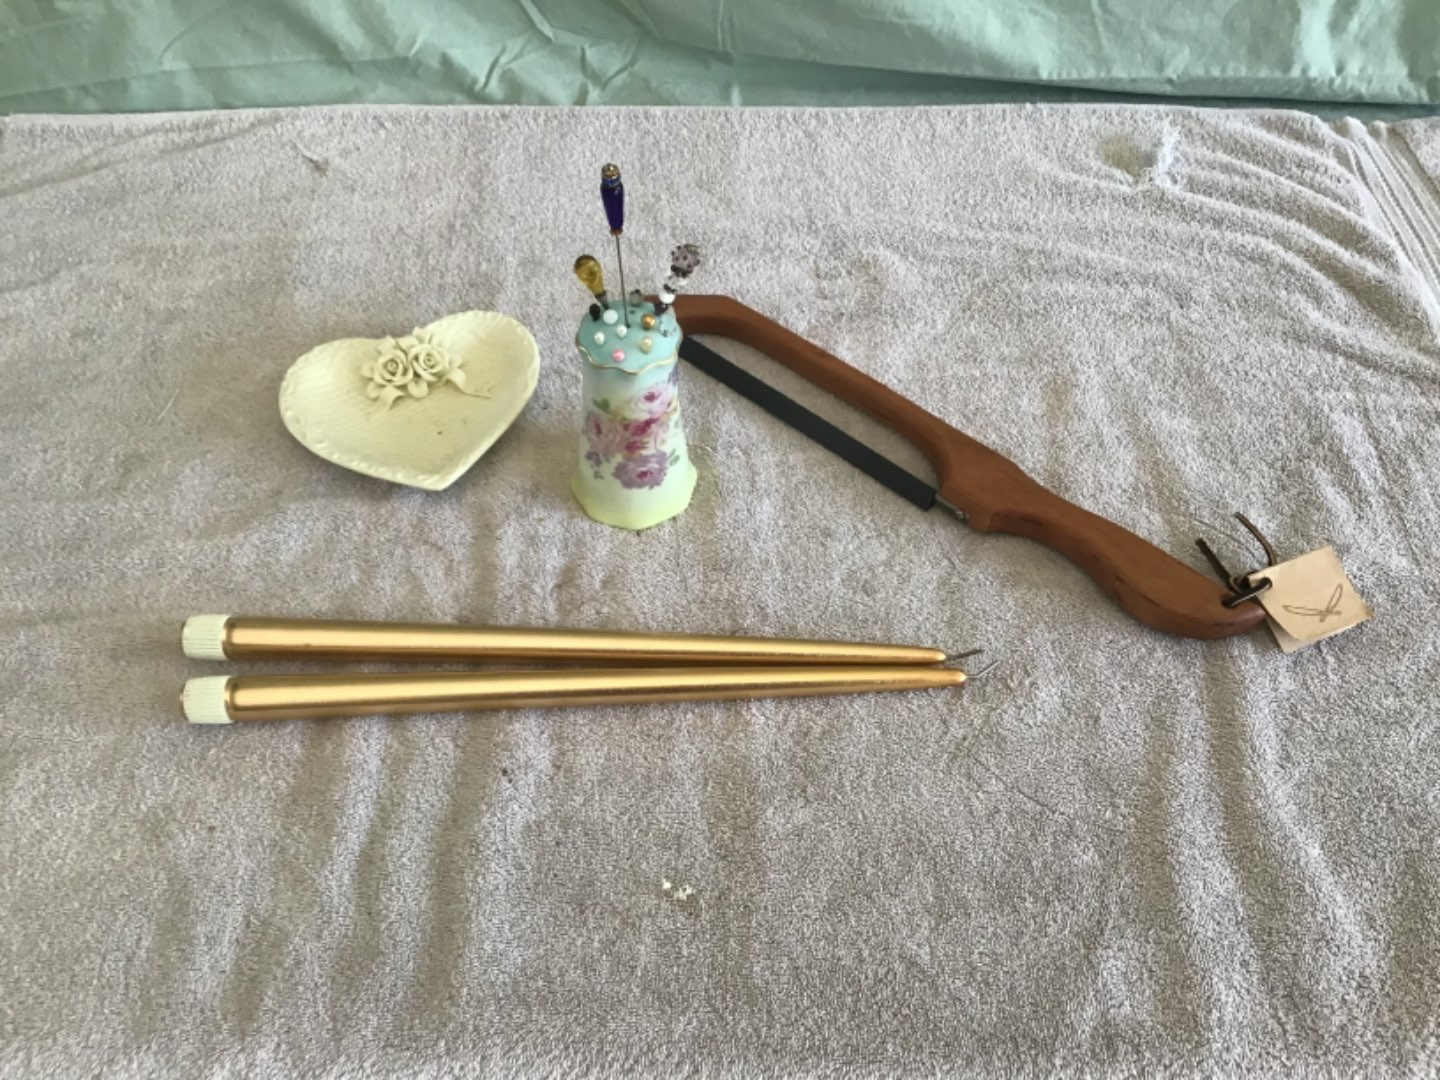 Lot # 220 Nice Collection - Vintage Hand-Painted Hatpin Holder, Bow Saw for Bread Cutting, Jewelry Dish, Butane Candles